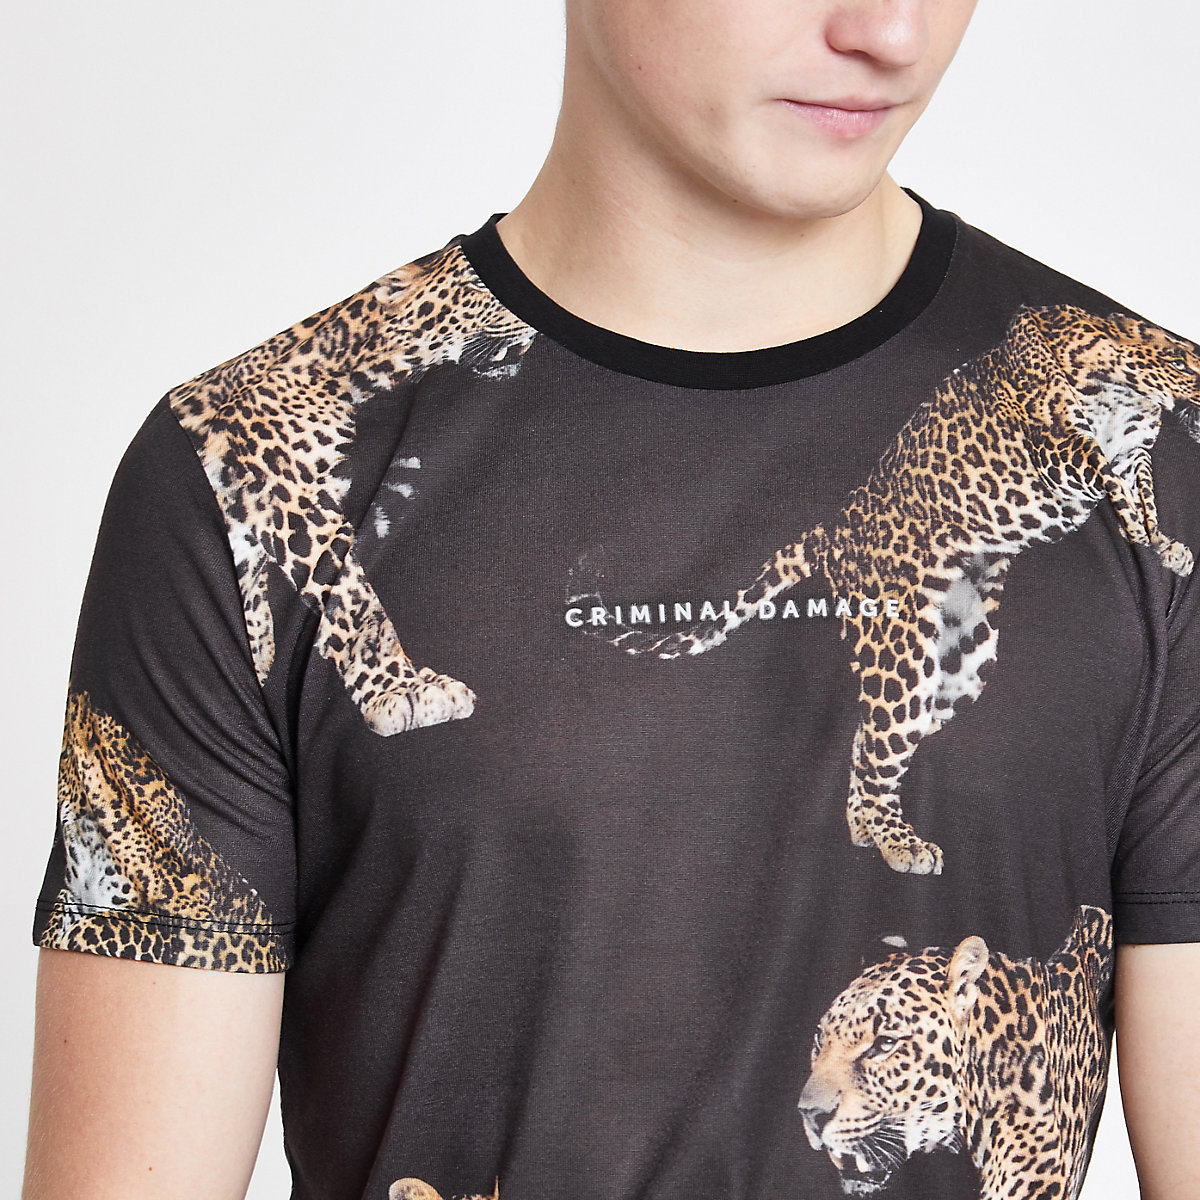 Criminal Damage black animal print T-shirt